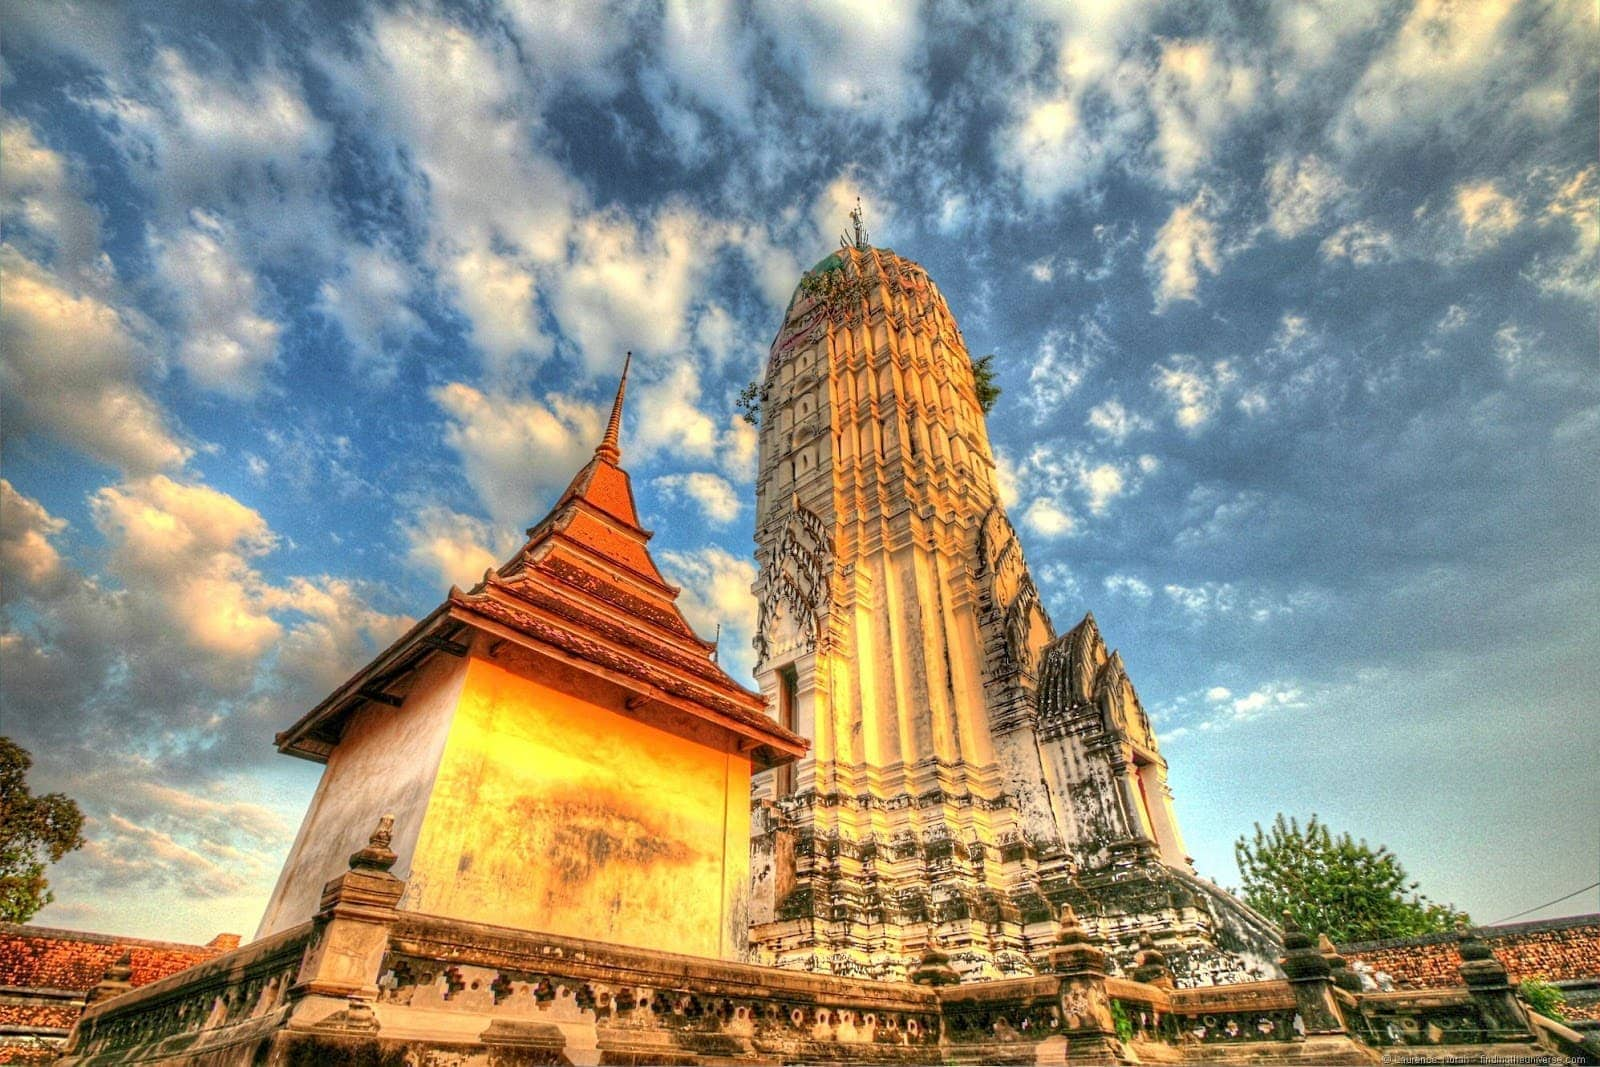 Prang temple Wat Ayutthaya sunset